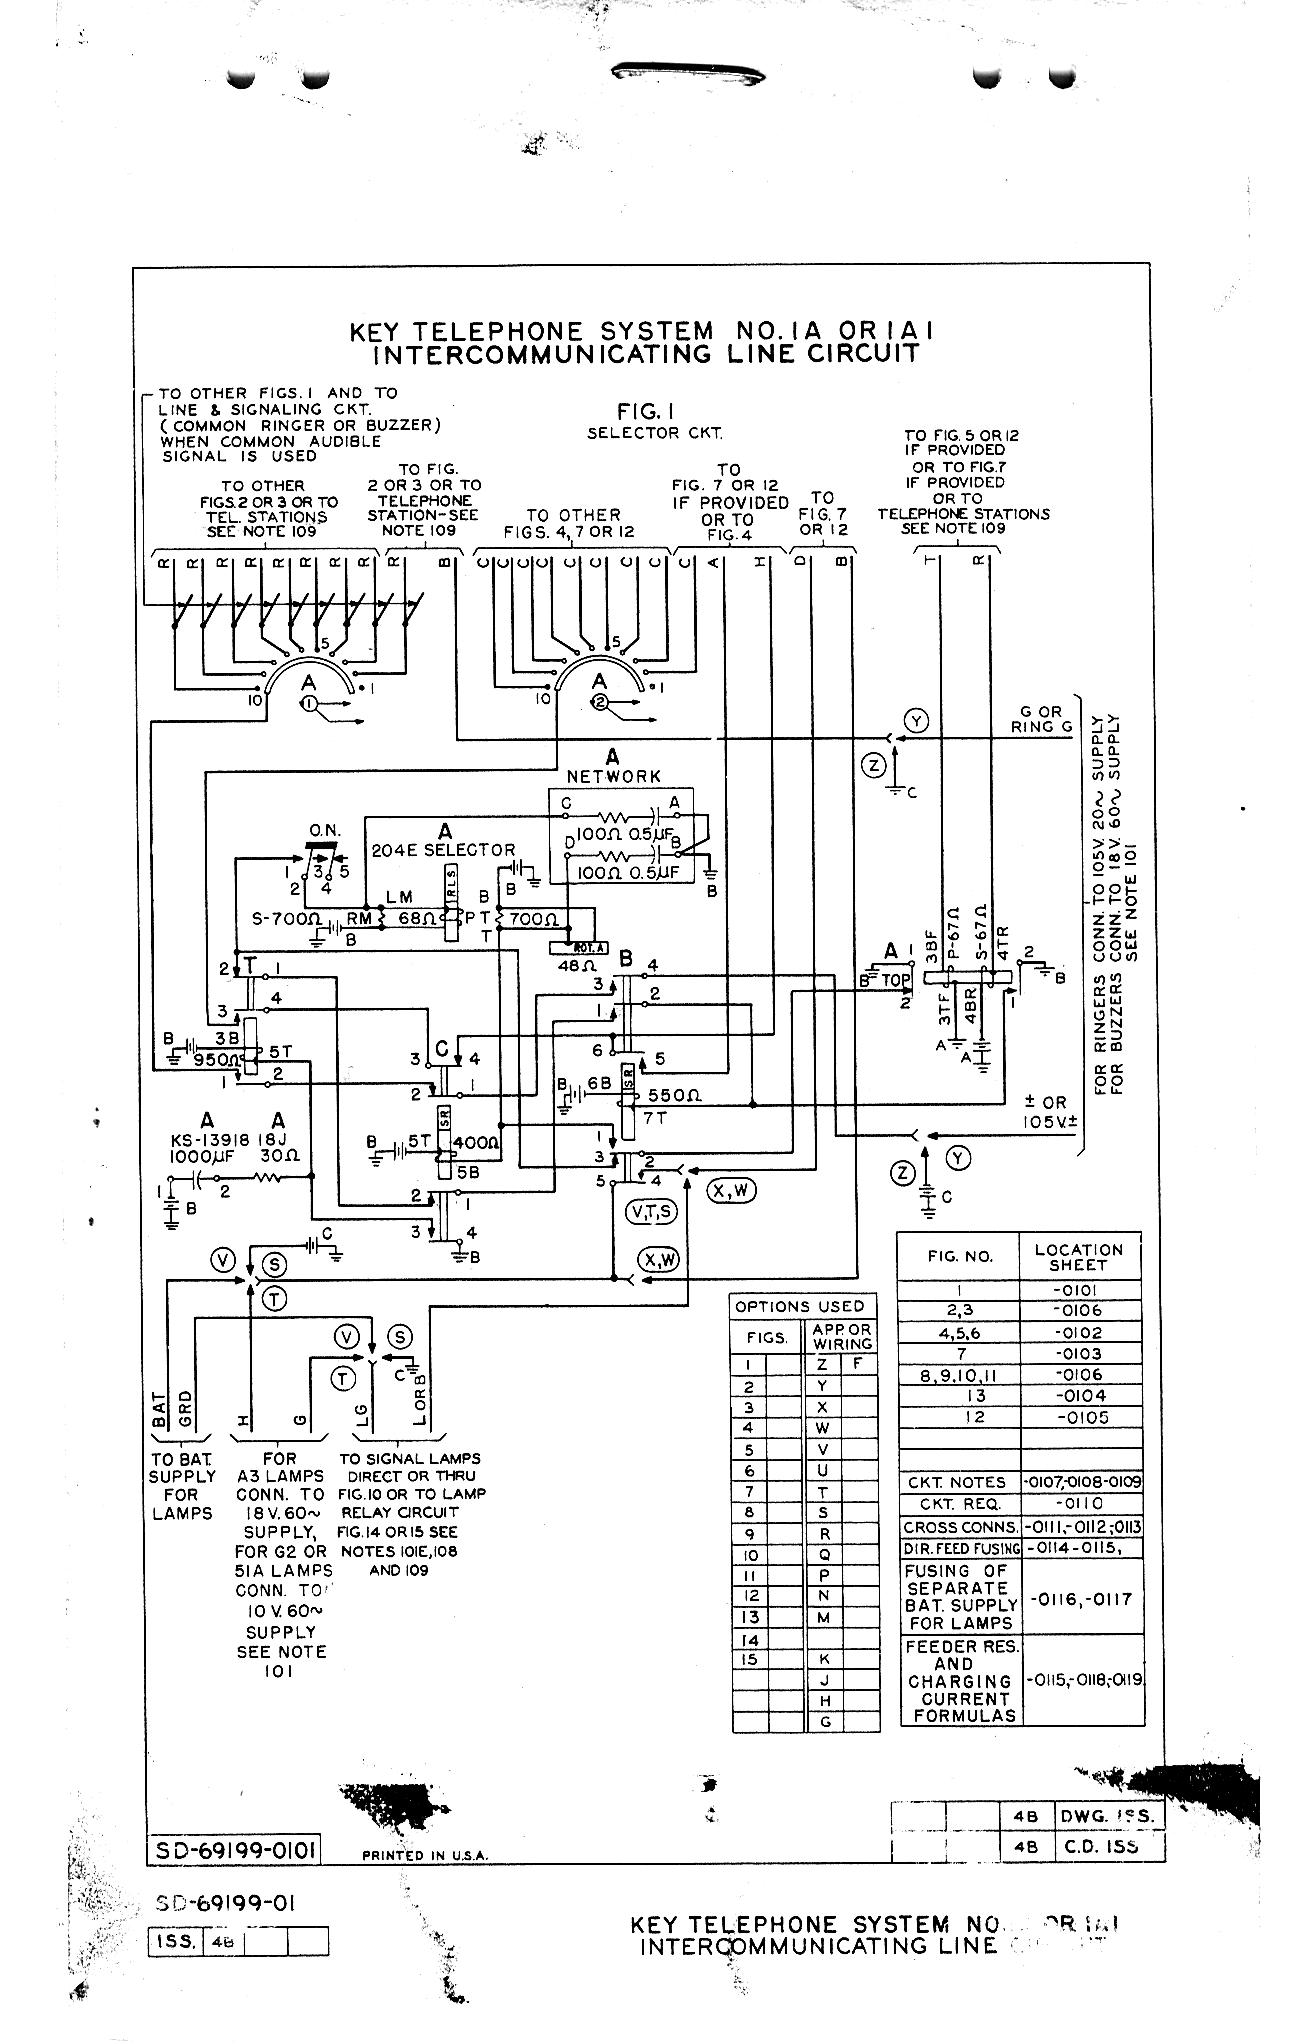 Telephone Technical References Intercom Circuit With Transistors Simple Schematic Collection Or 1a1 Circuits